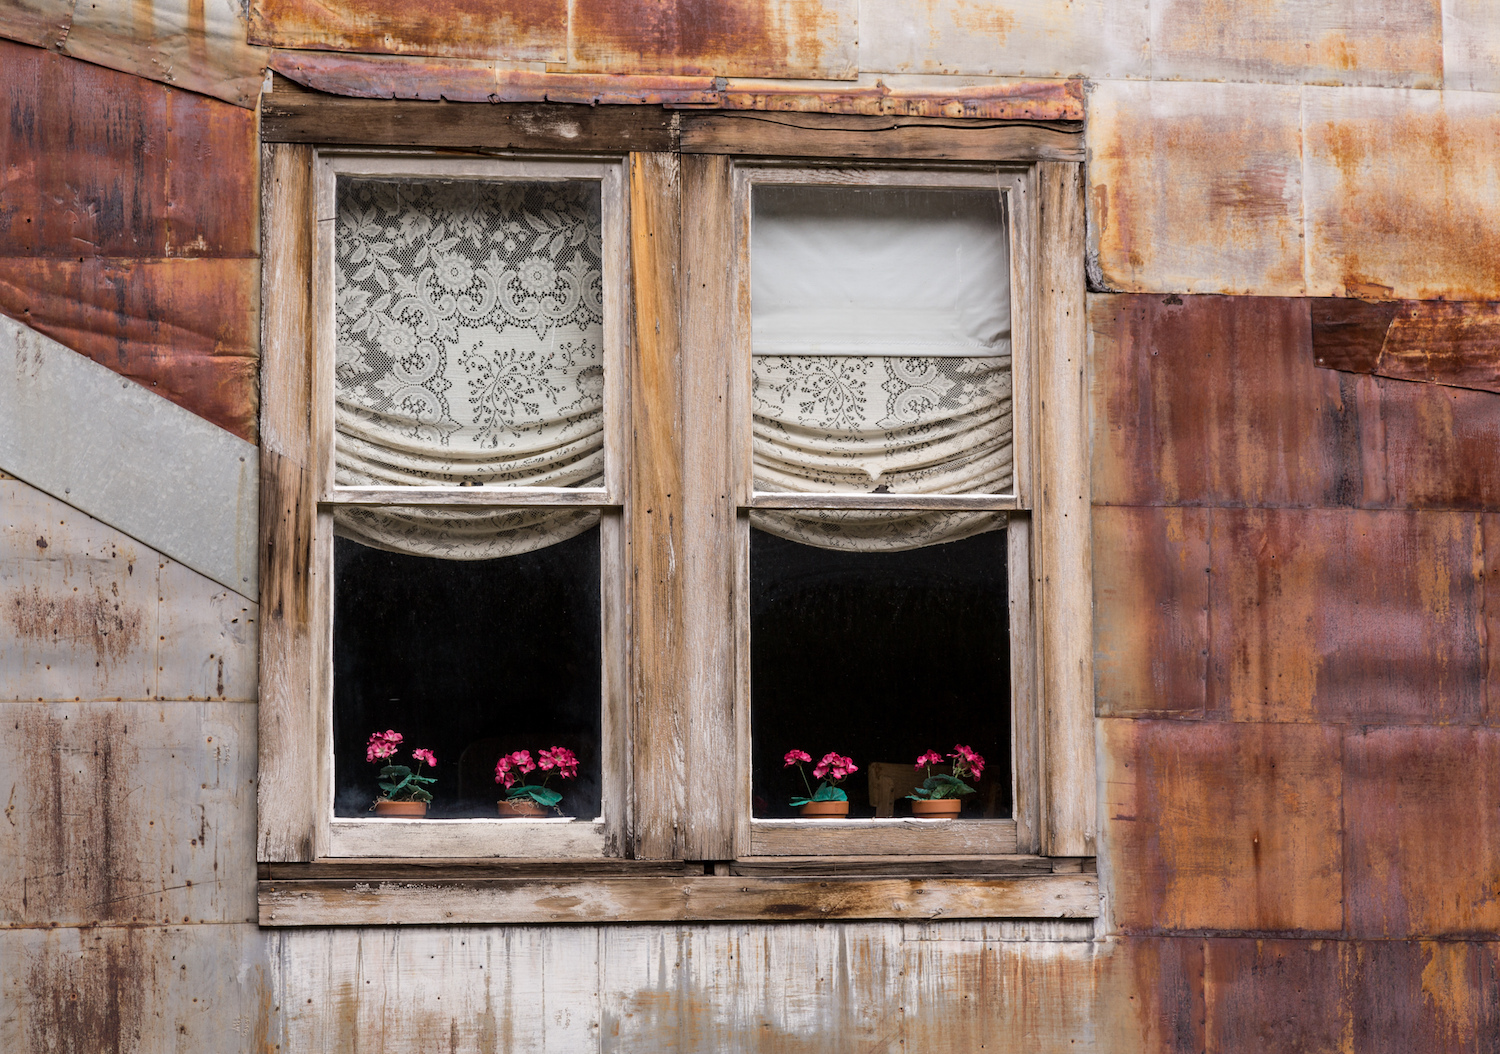 Old wooden windows and flowers in ghost town of St Elmo in Colorado.